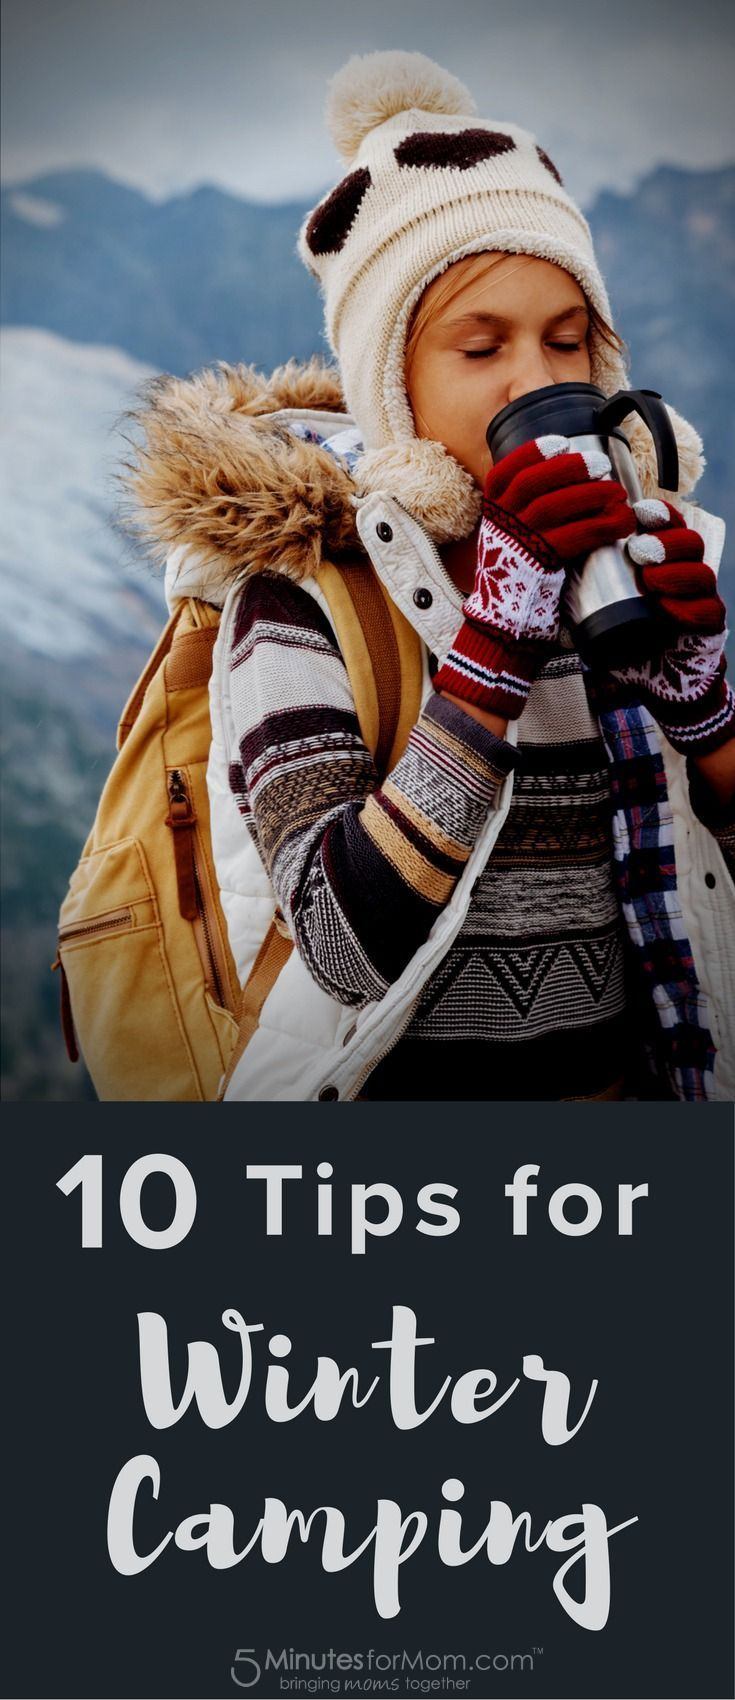 10 Tips for Winter Camping - How to Have Fun Camping in ...